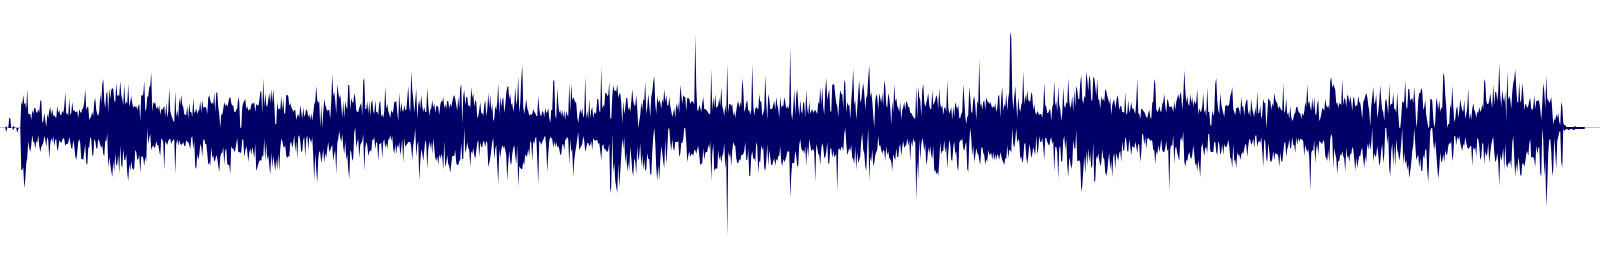 waveform of track #111421